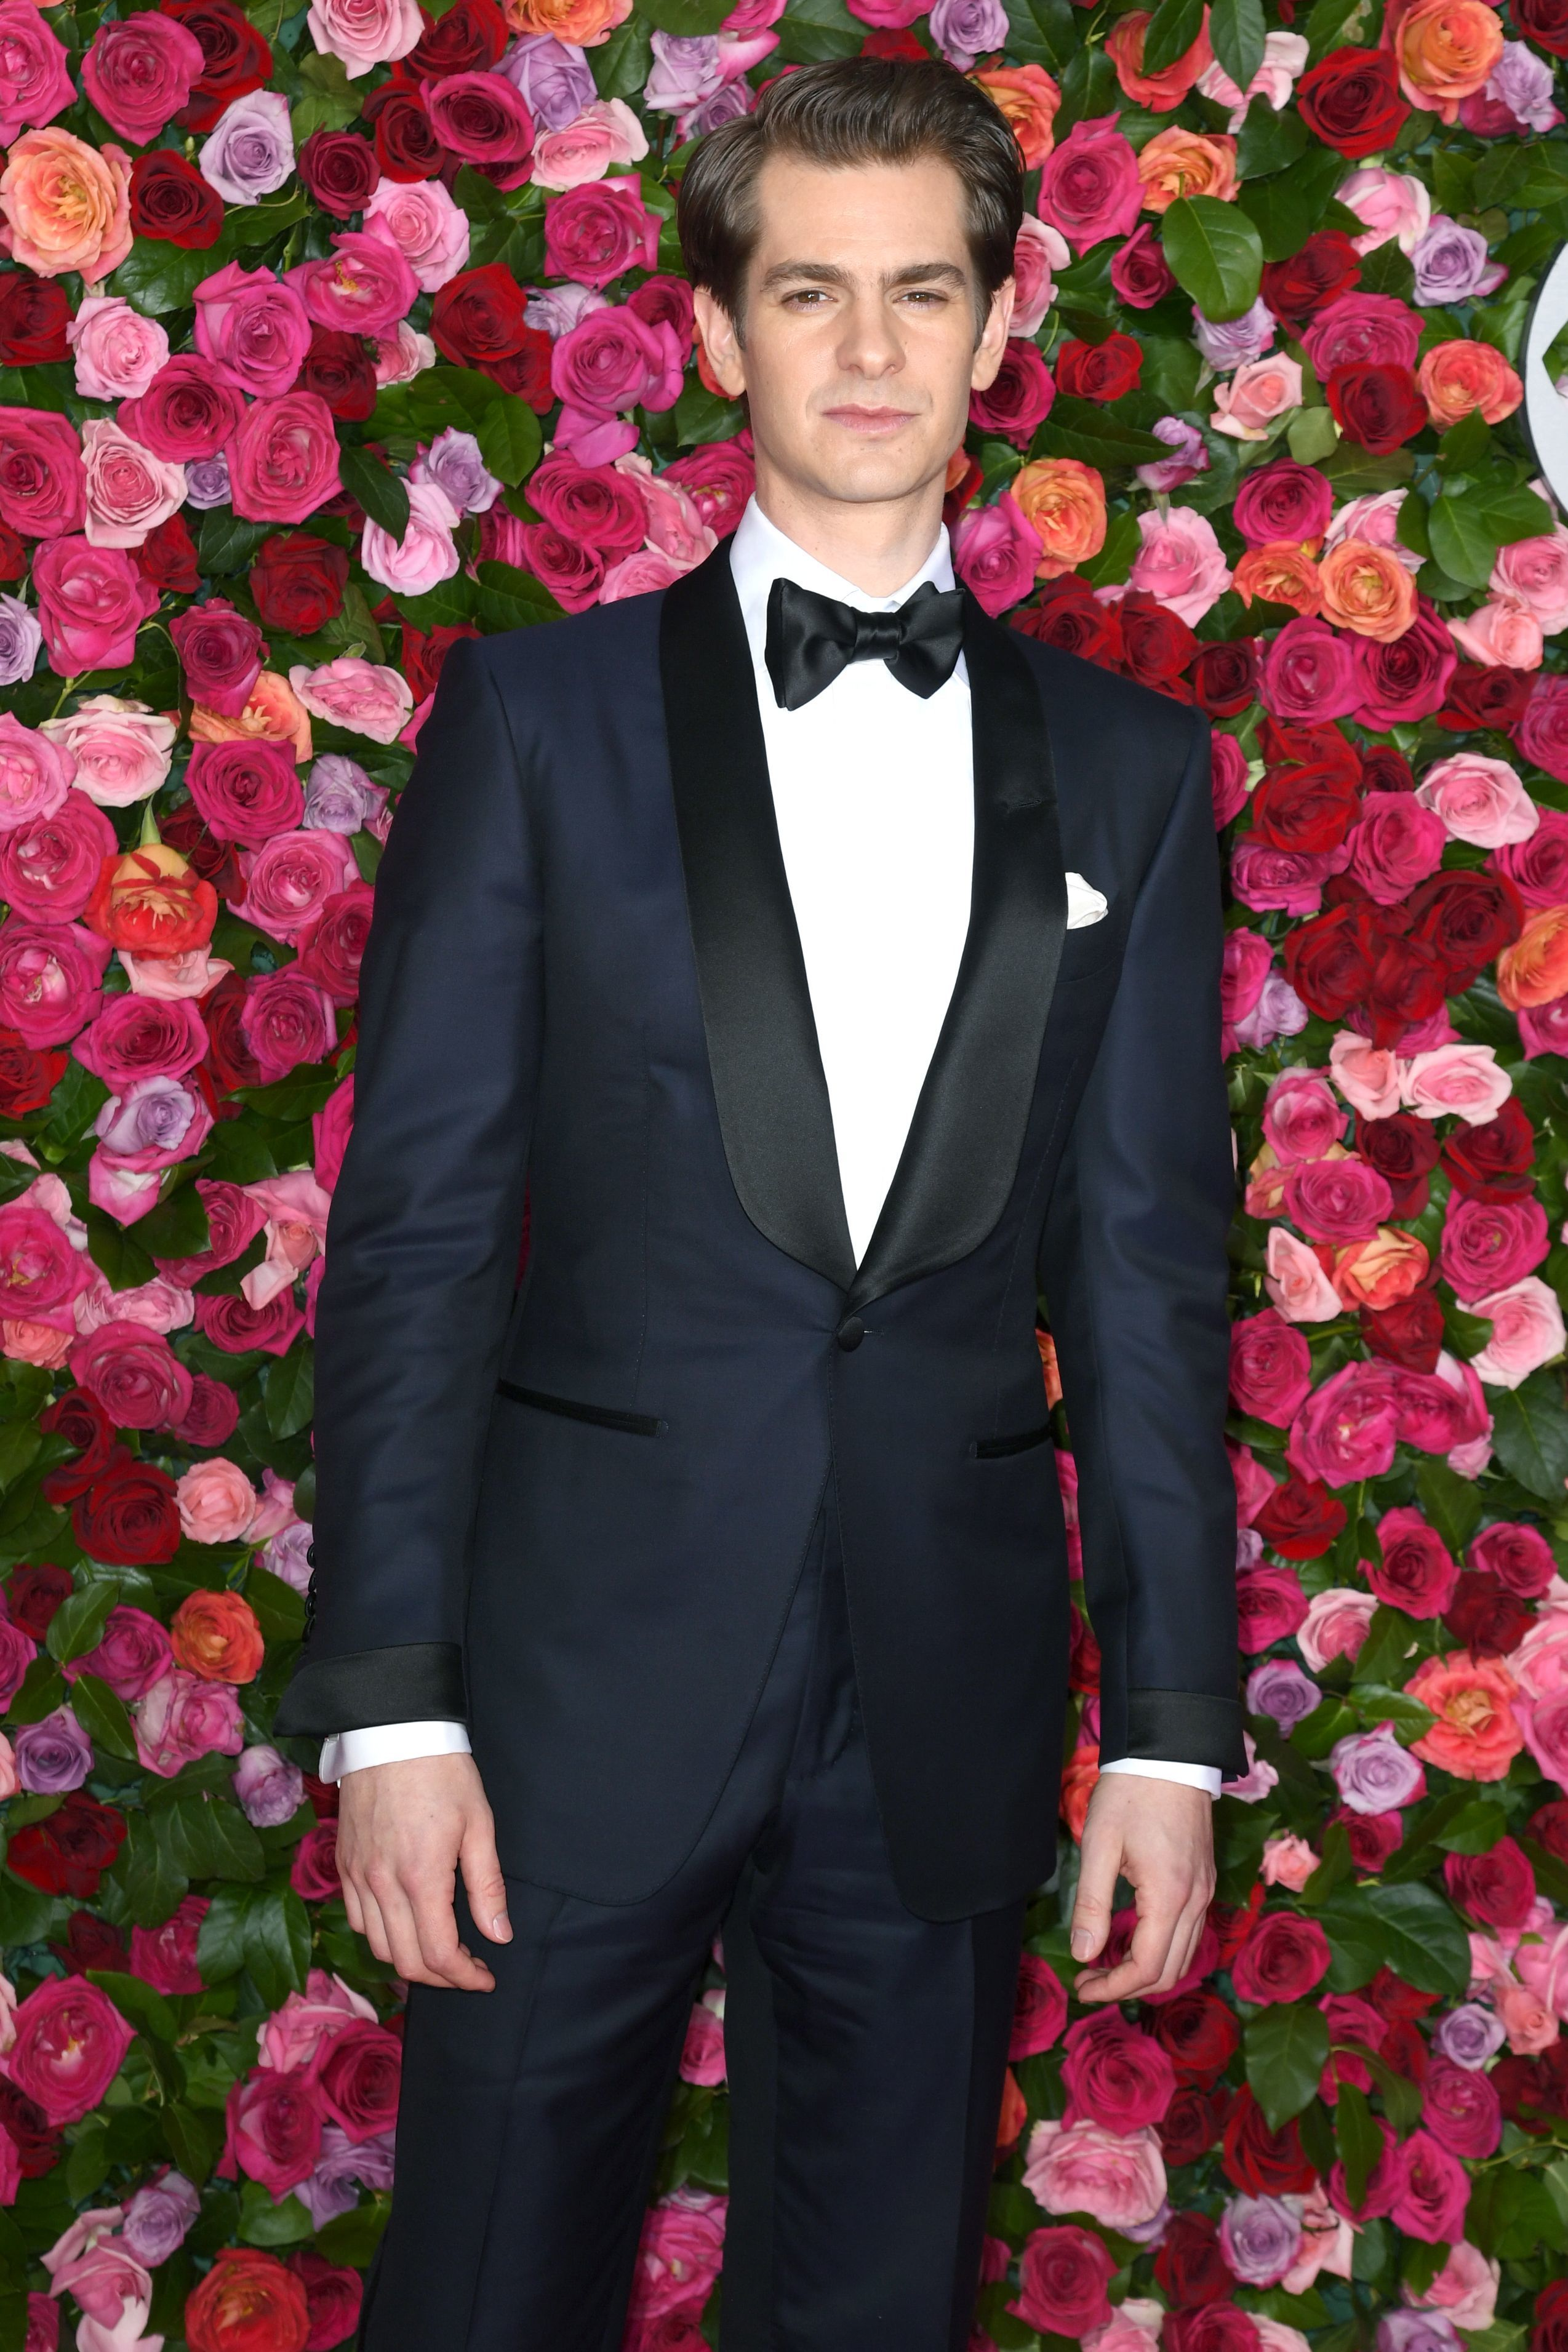 Andrew Garfield arrives at the 72nd Annual Tony Awards in New York City on June 10, 2018.